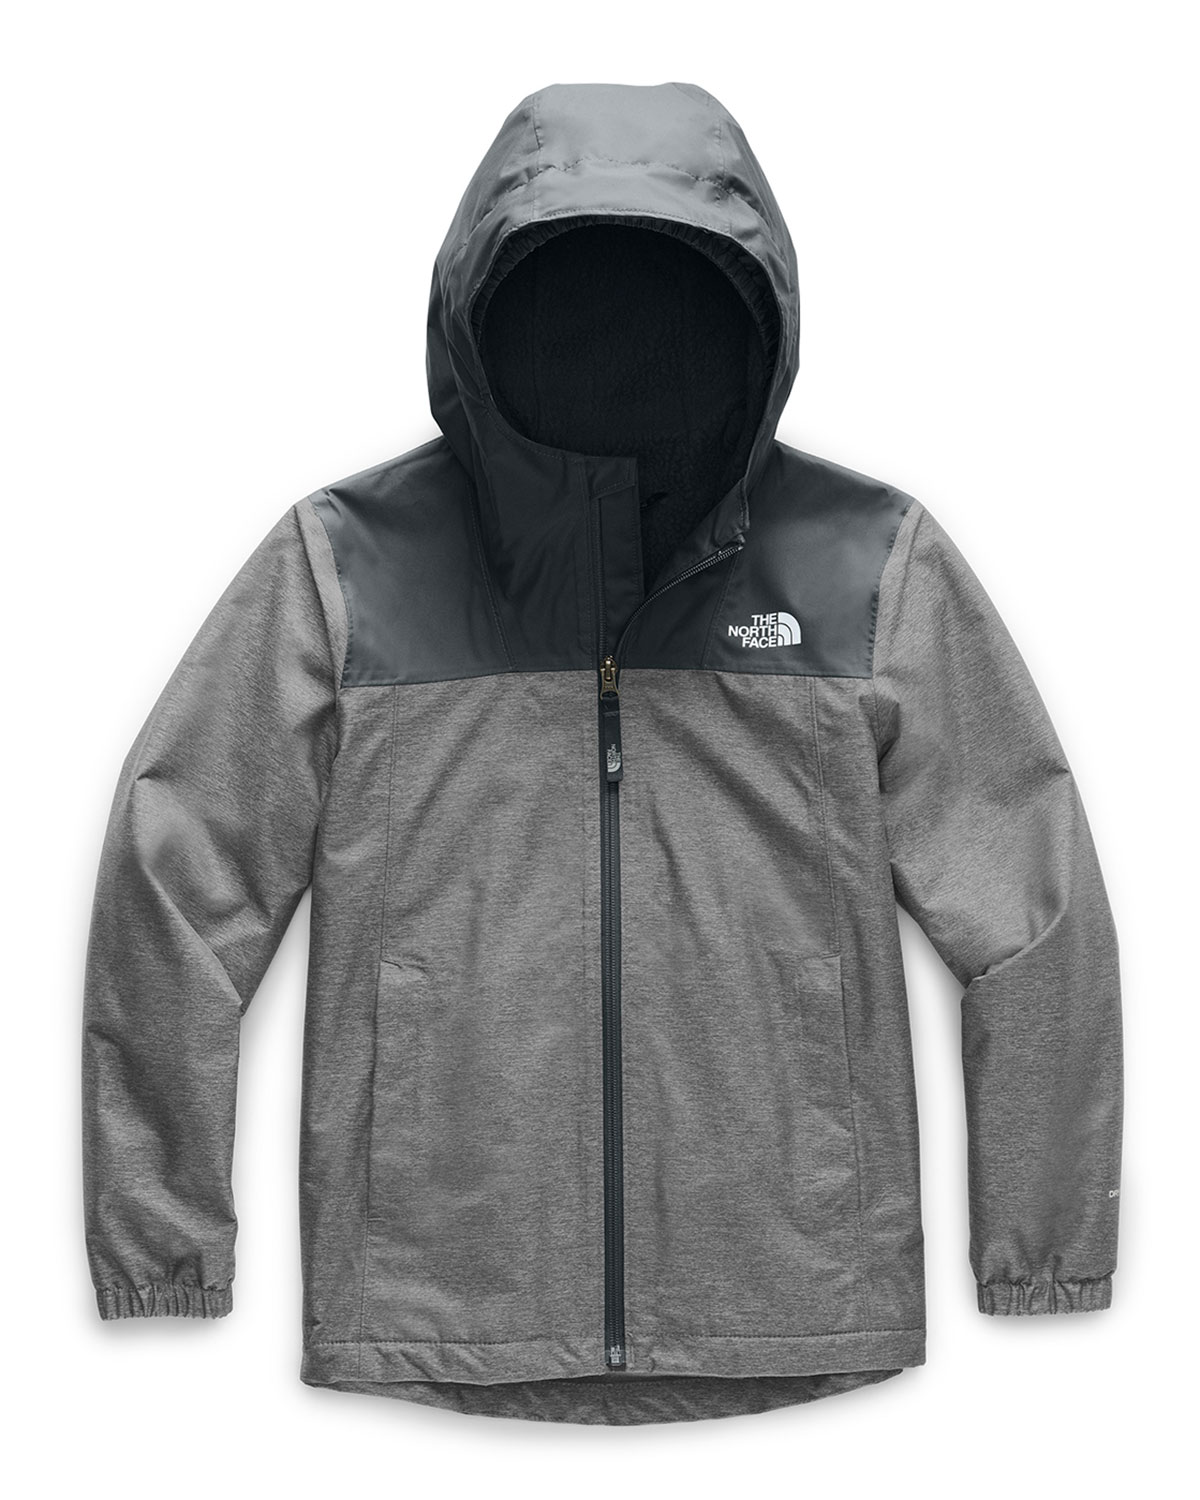 The North Face BOY'S WARM STORM TWO-TONE JACKET